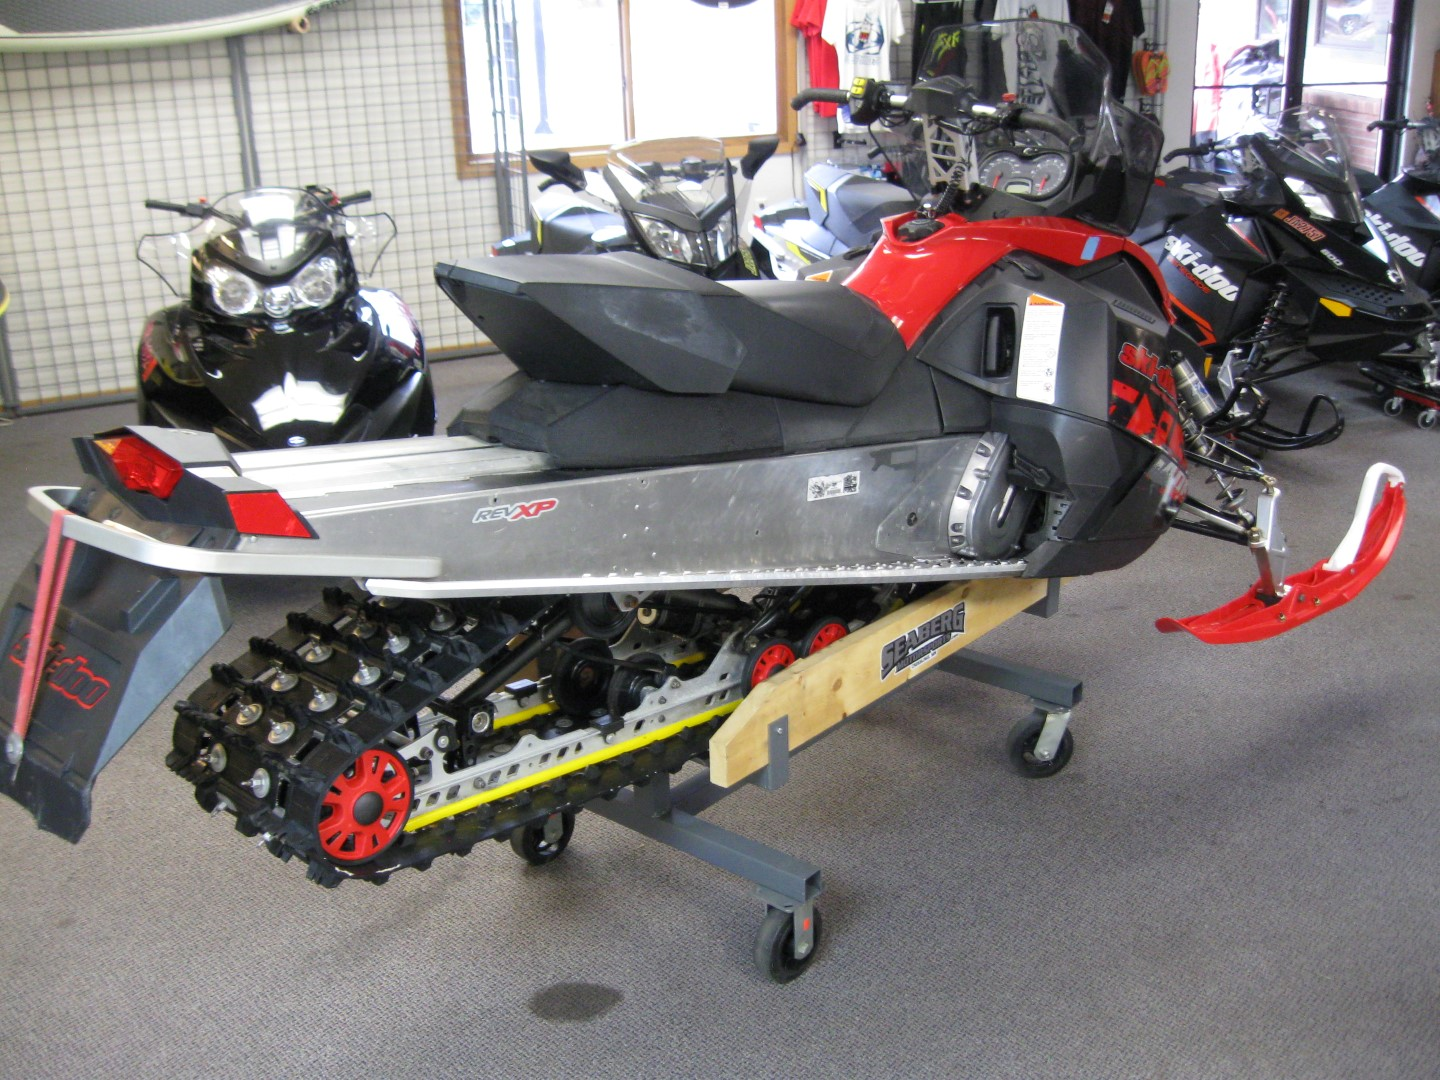 2011 Ski-Doo Renegade 800 XP snowmobile for sale Maple grove MN Seaberg motorsports Rear Quarter View black and red